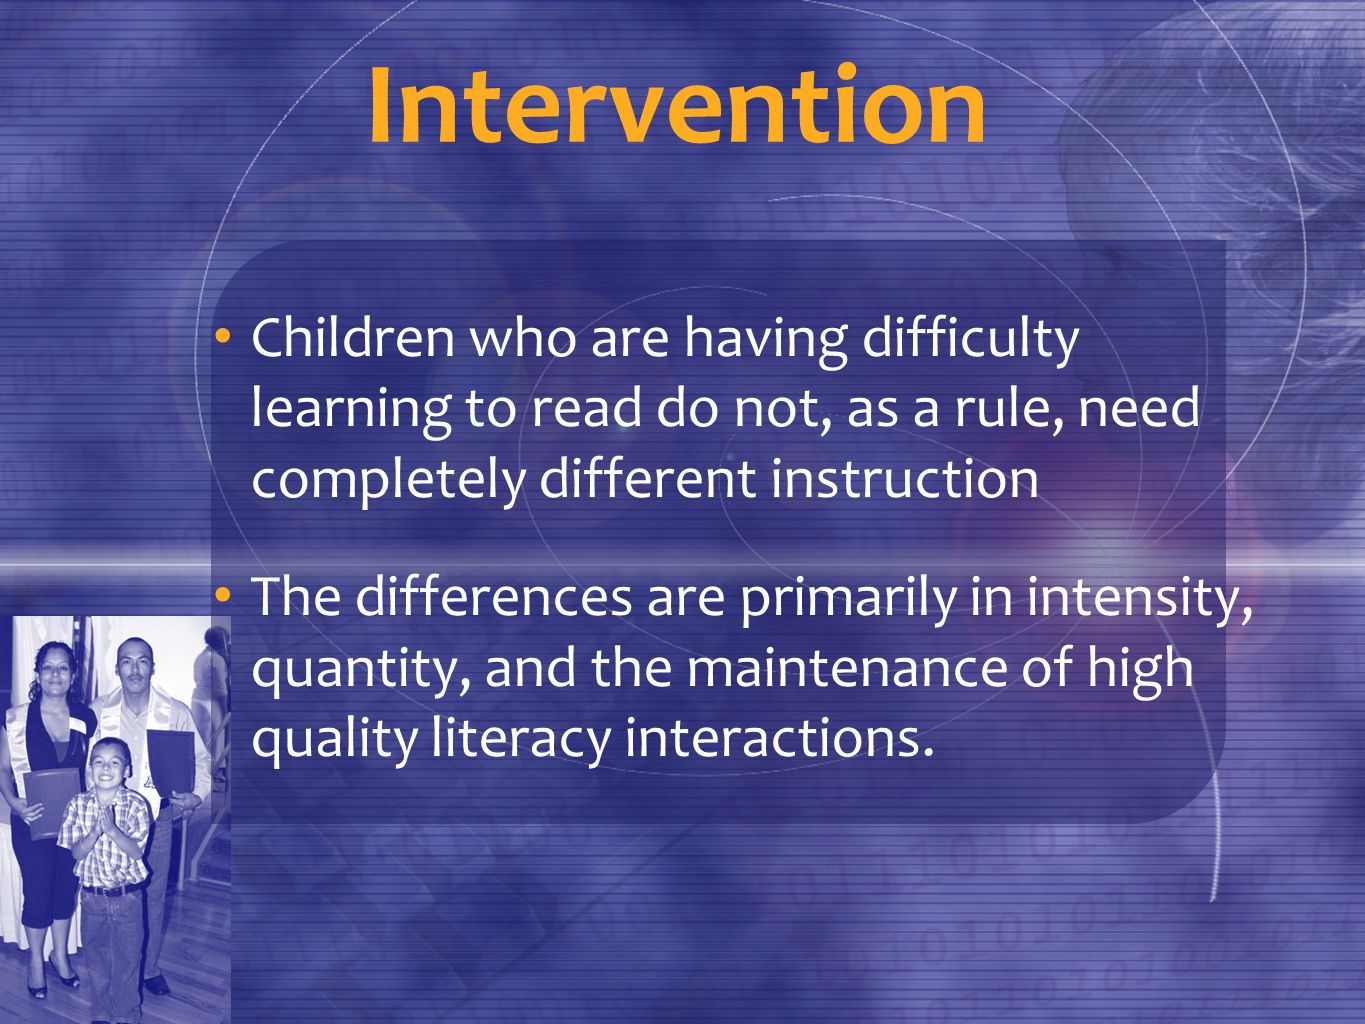 Intervention Children who are having difficulty learning to read do not, as a rule, need completely different instruction The differences are primarily in intensity, quantity, and the maintenance of high quality literacy interactions.